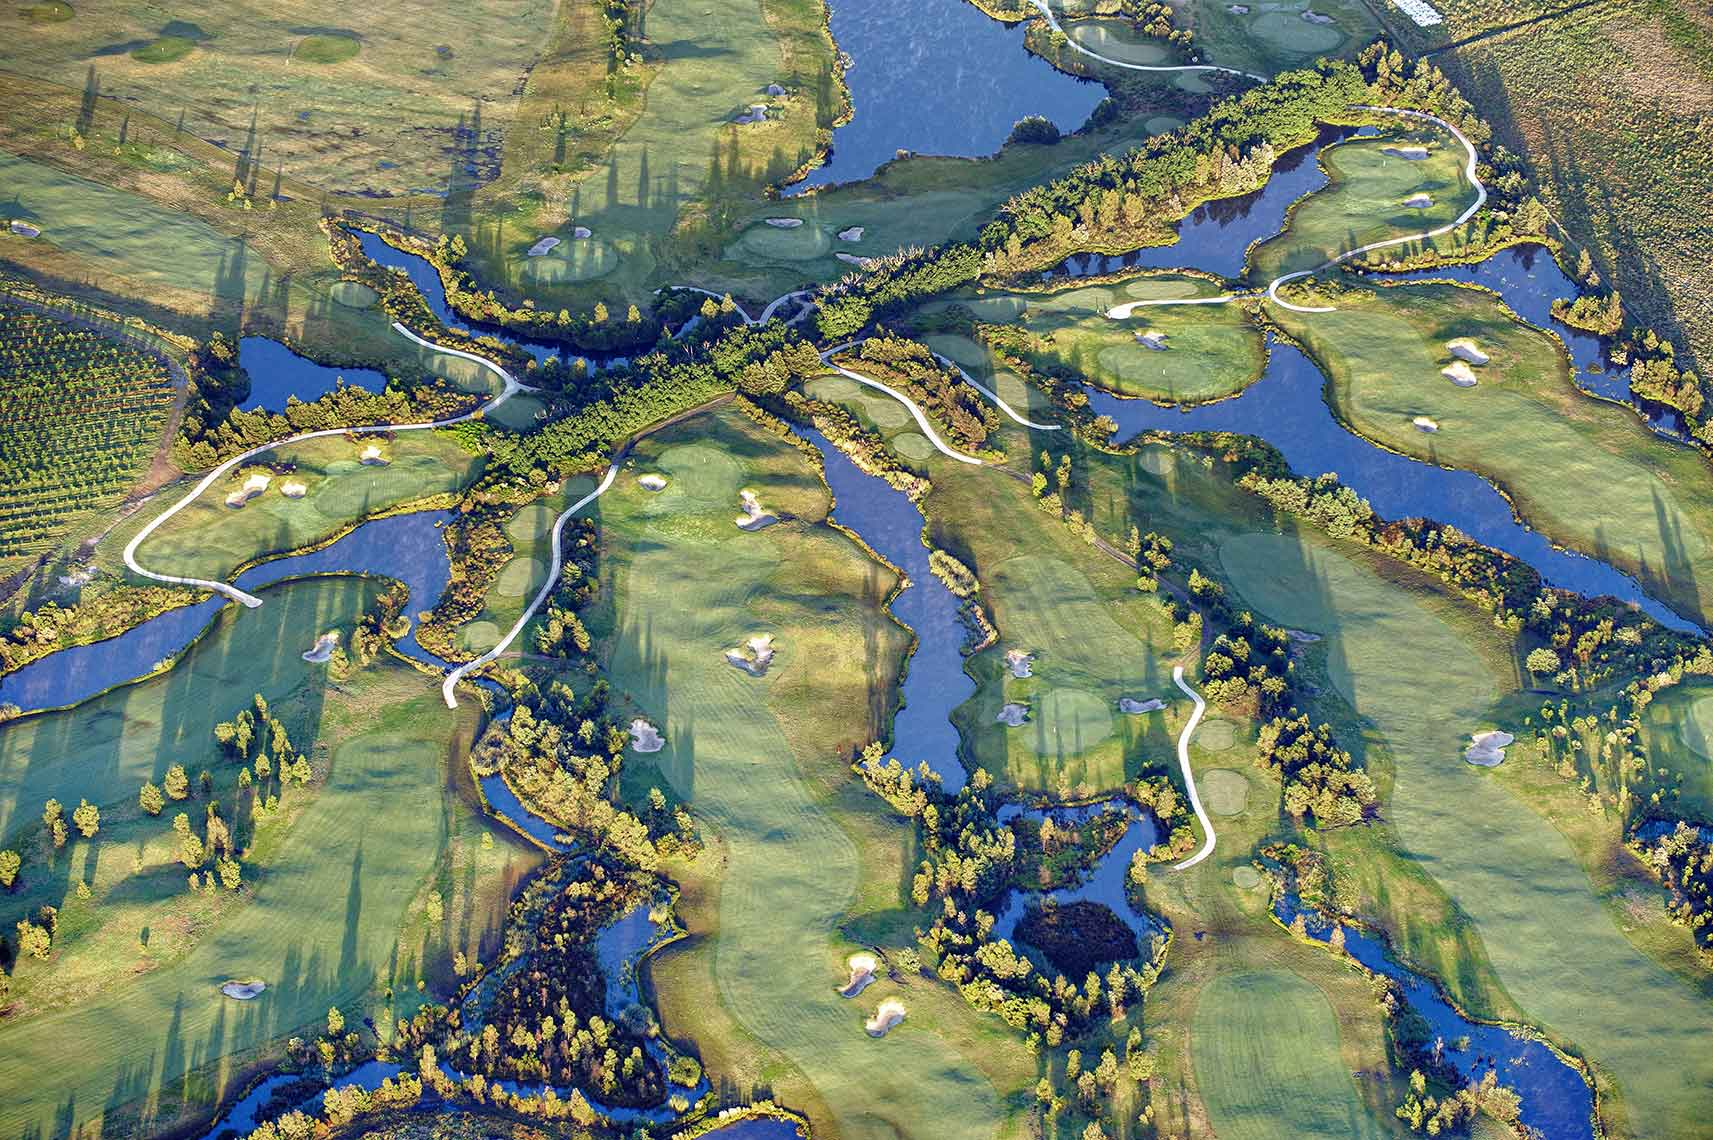 Zoe Wetherall / Earth Series / Golf / Aerial Photography